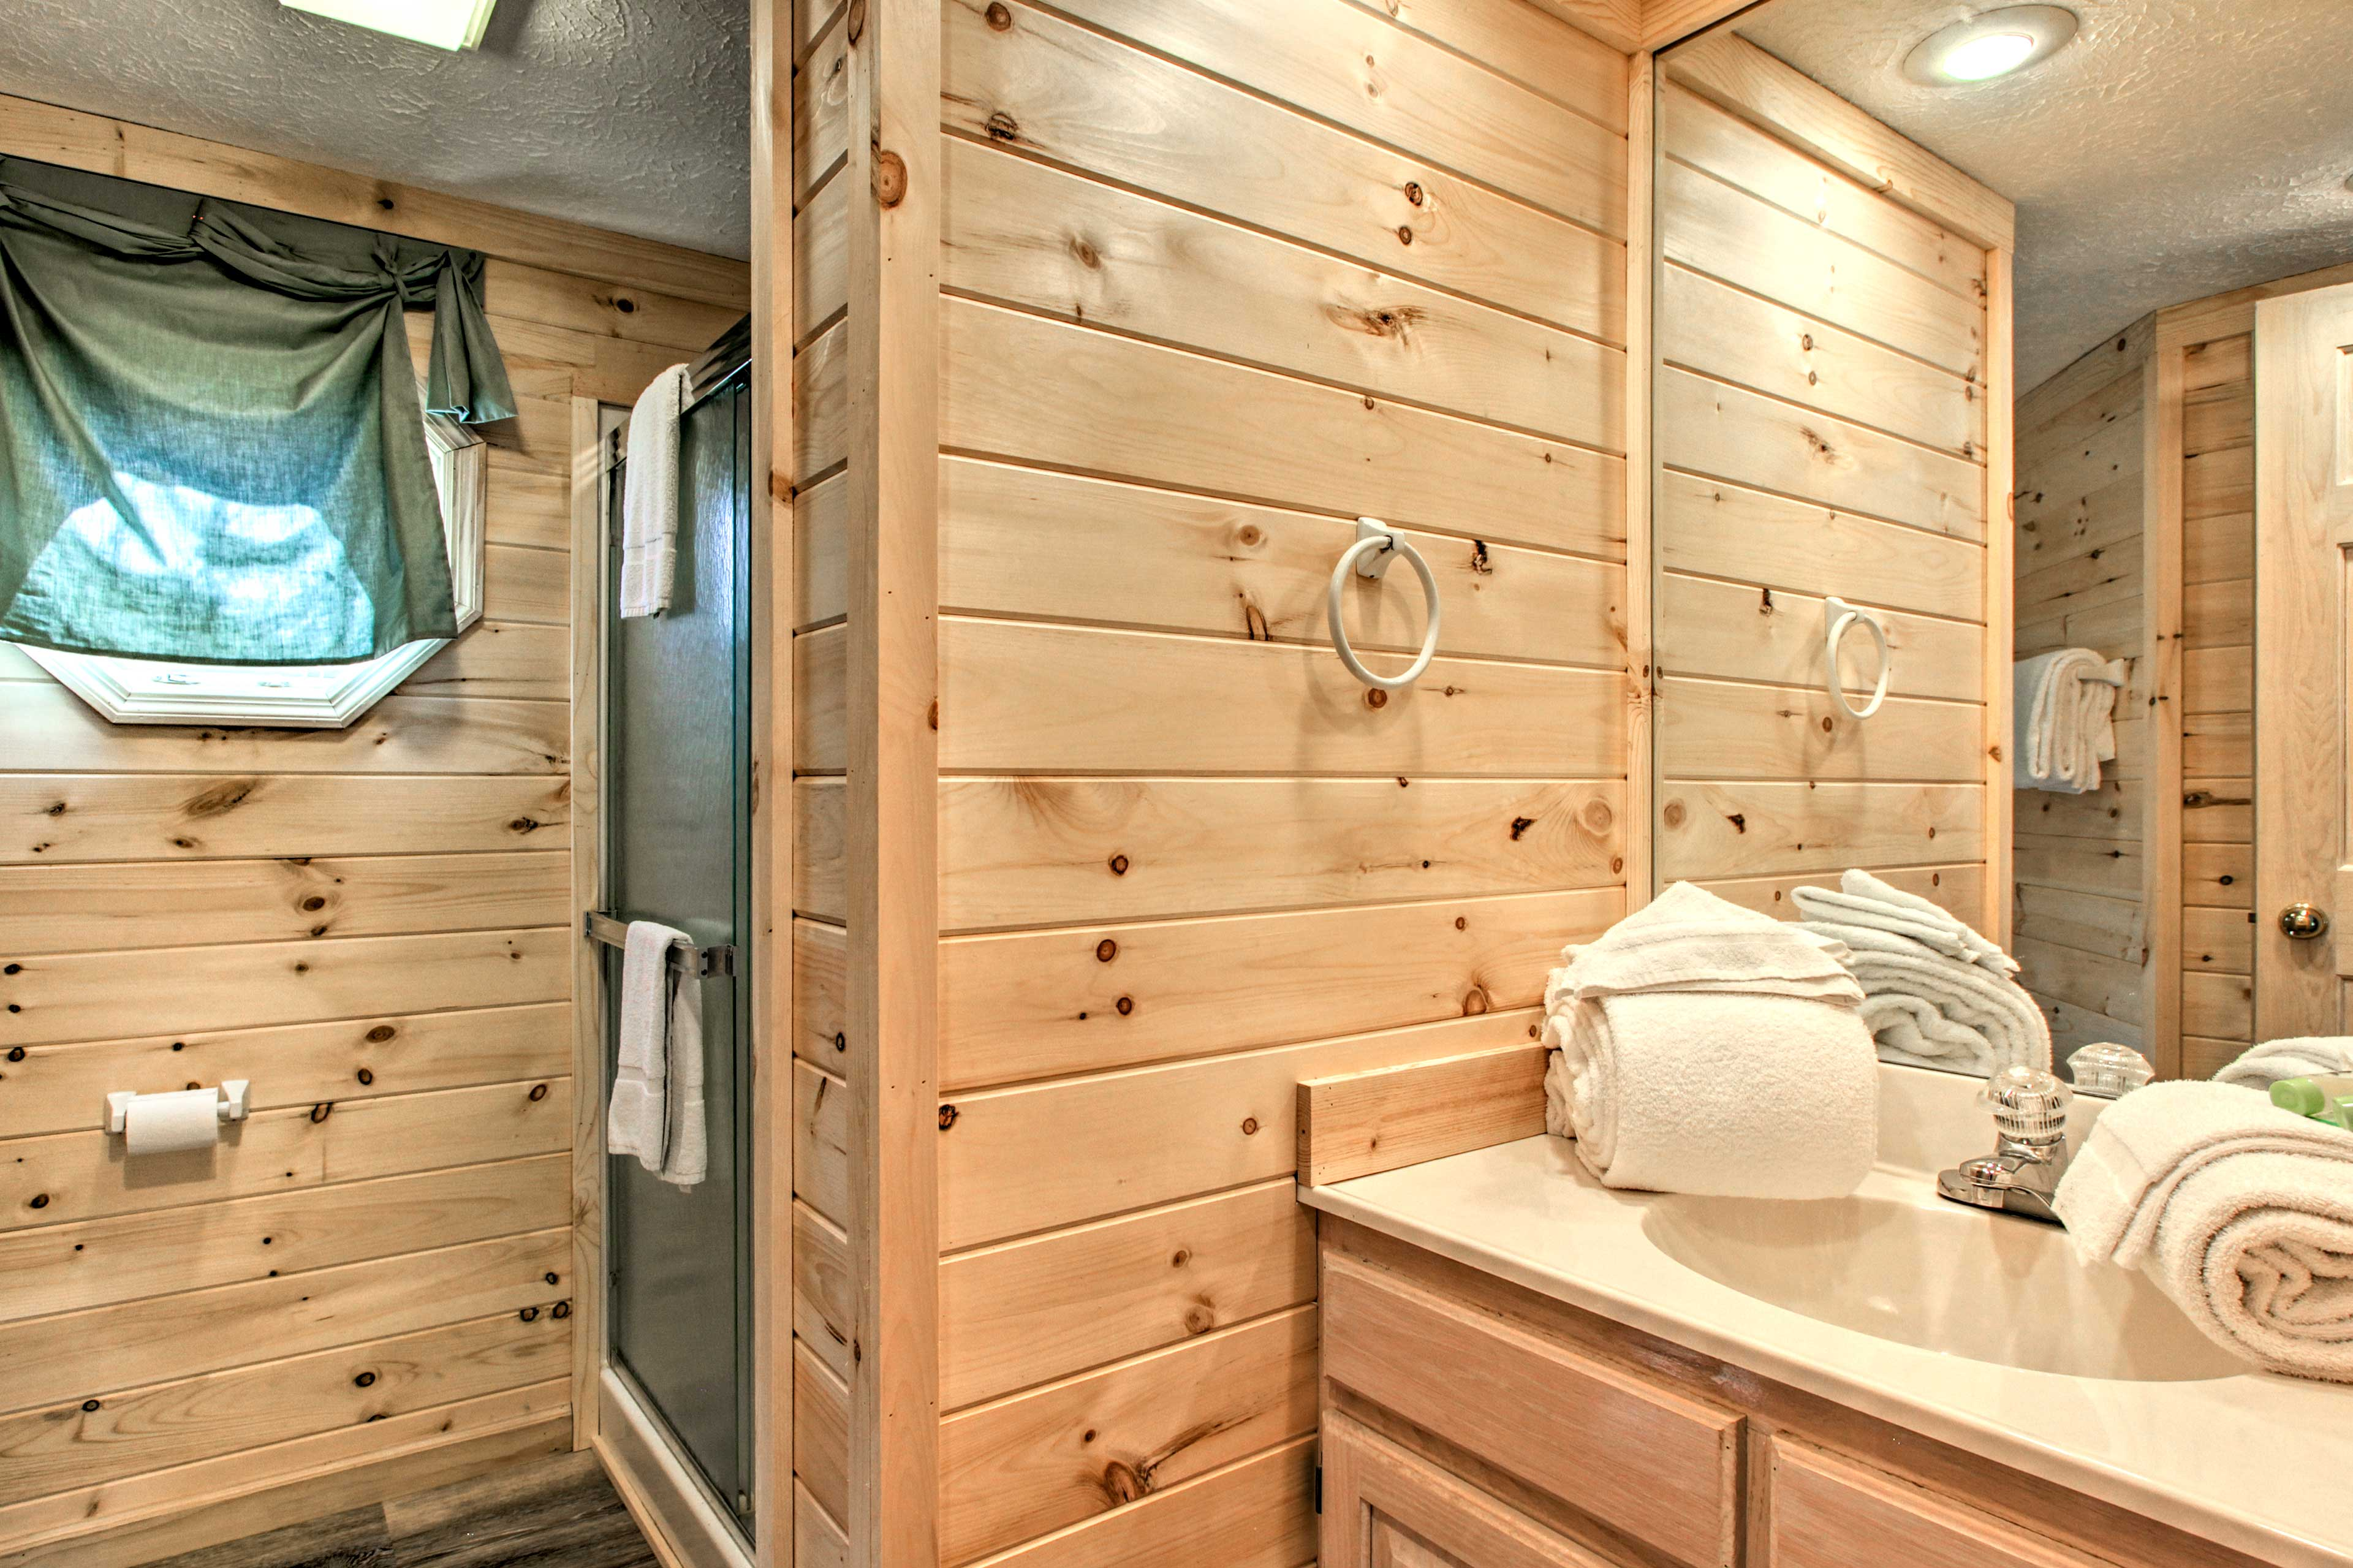 The spacious master bath offers a walk-in shower.